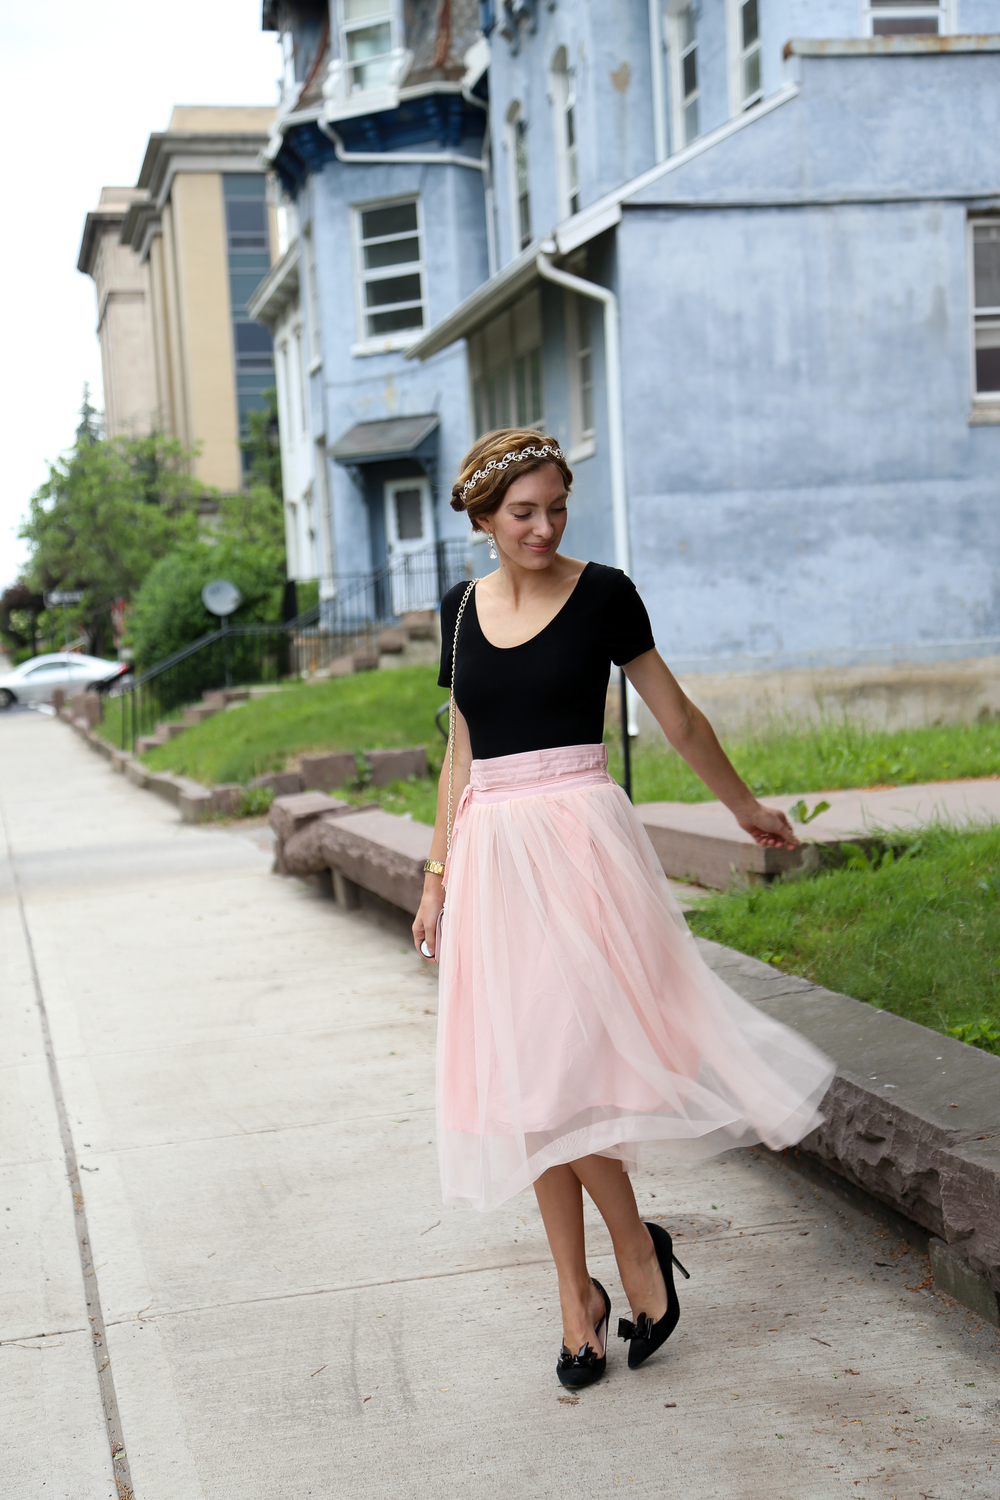 Ballerina in the City- Enchanting Elegance